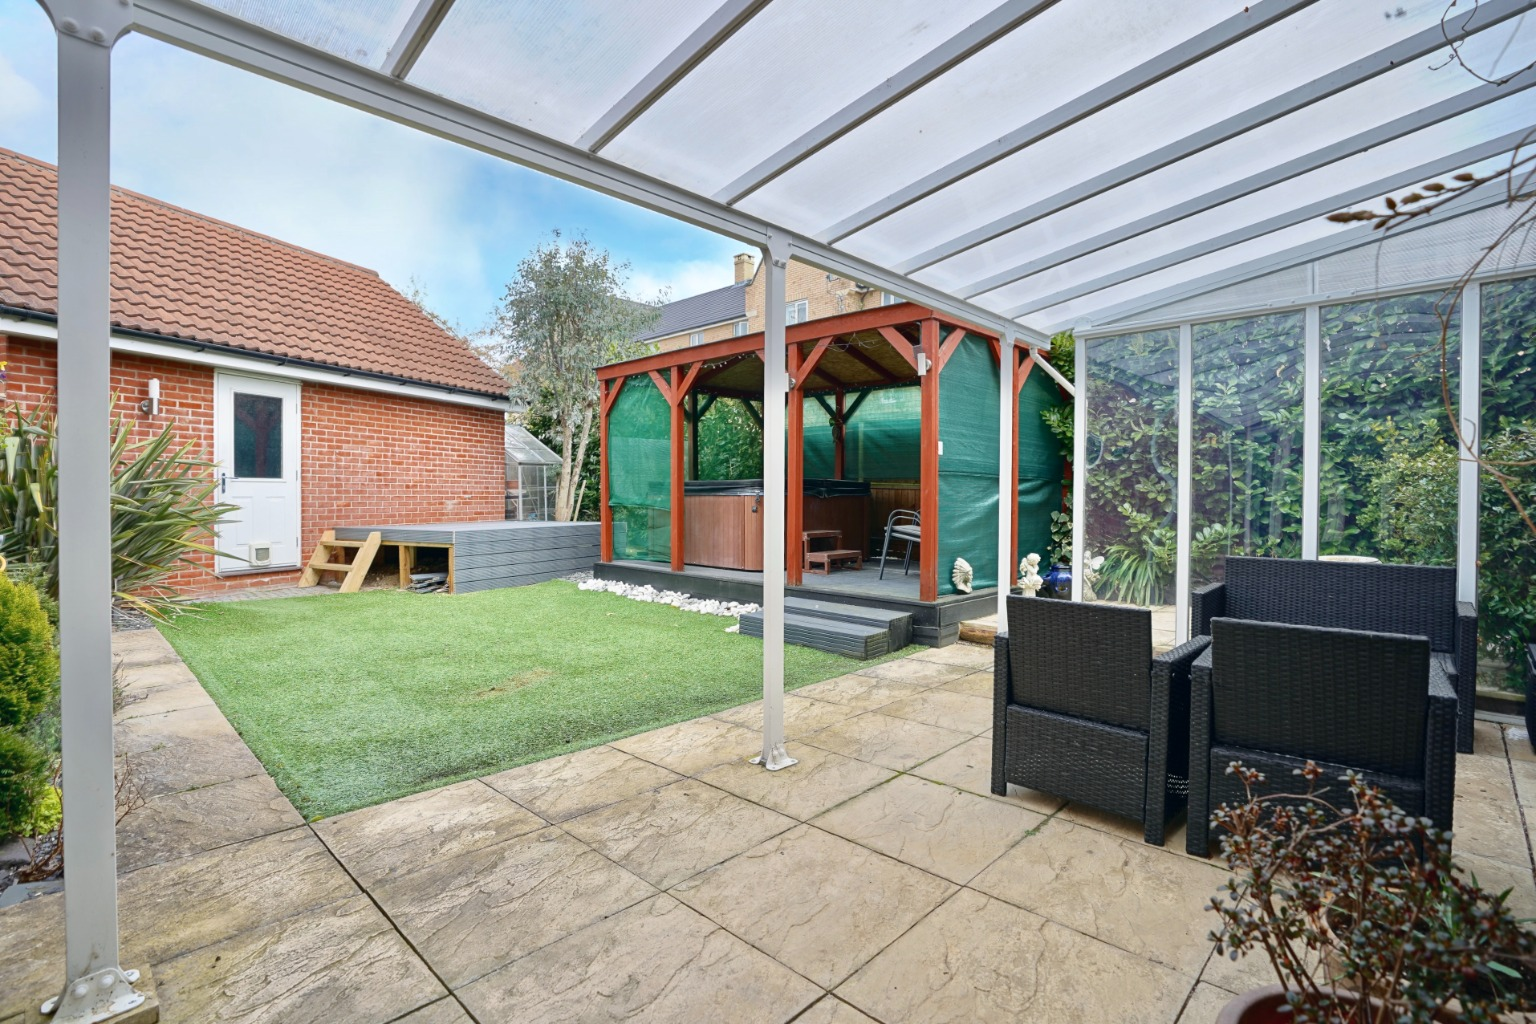 4 bed detached house for sale in Daffodil Close, St. Neots  - Property Image 13